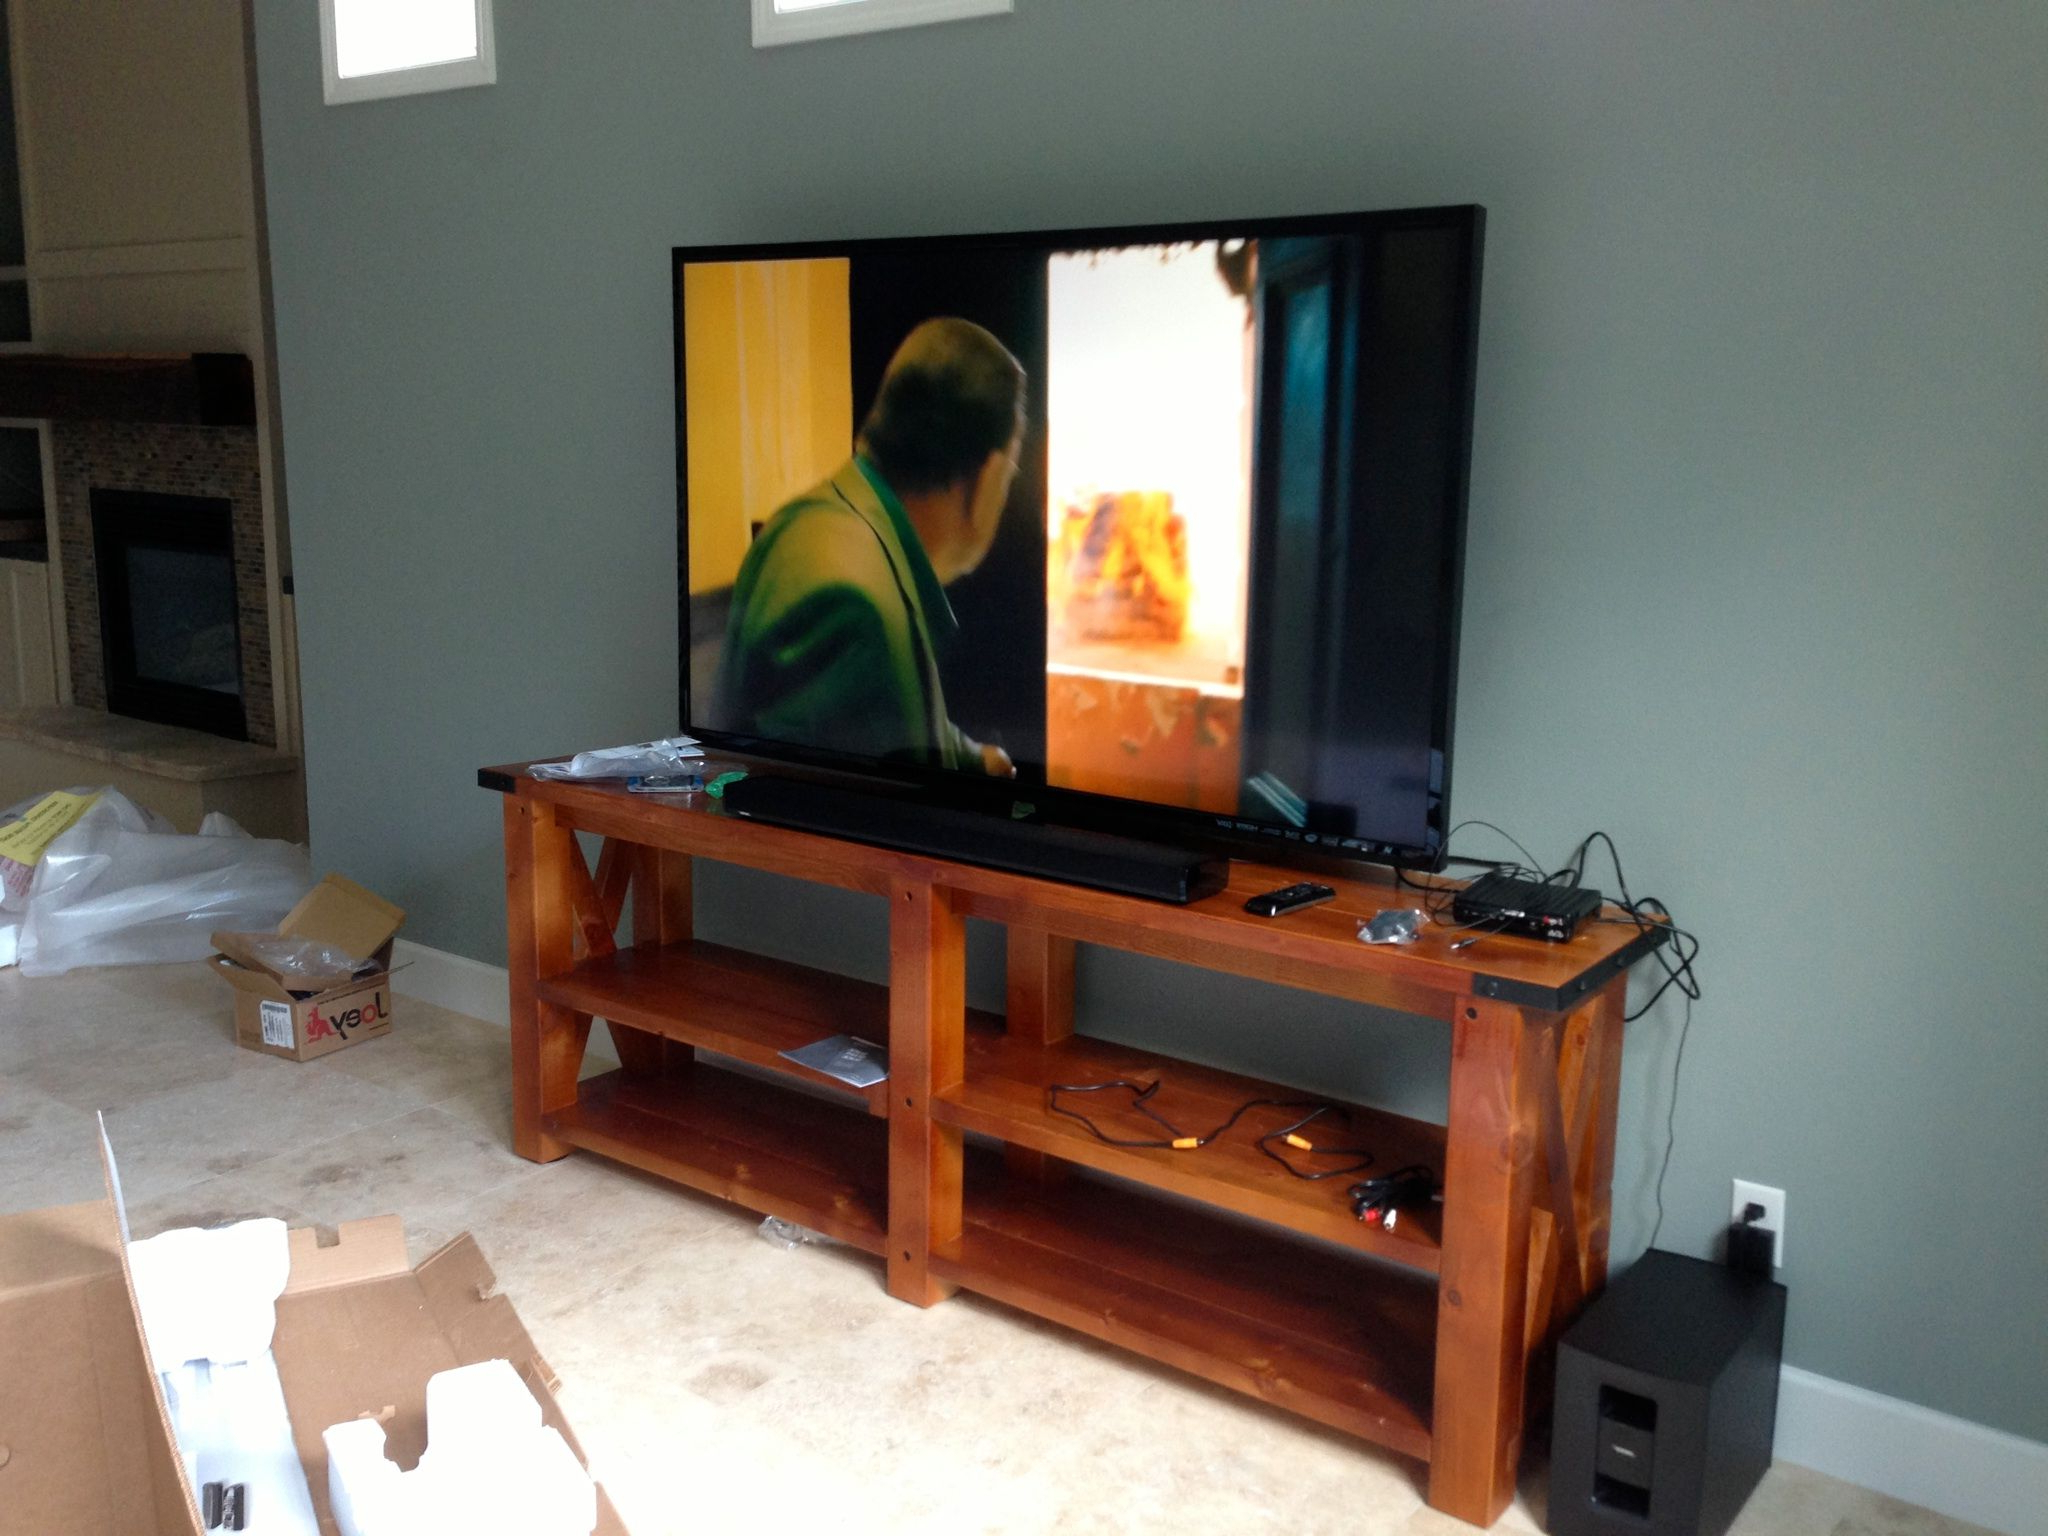 Entertainment Center Out Of 2x4's And 4x4 Timbers (View 10 of 20)